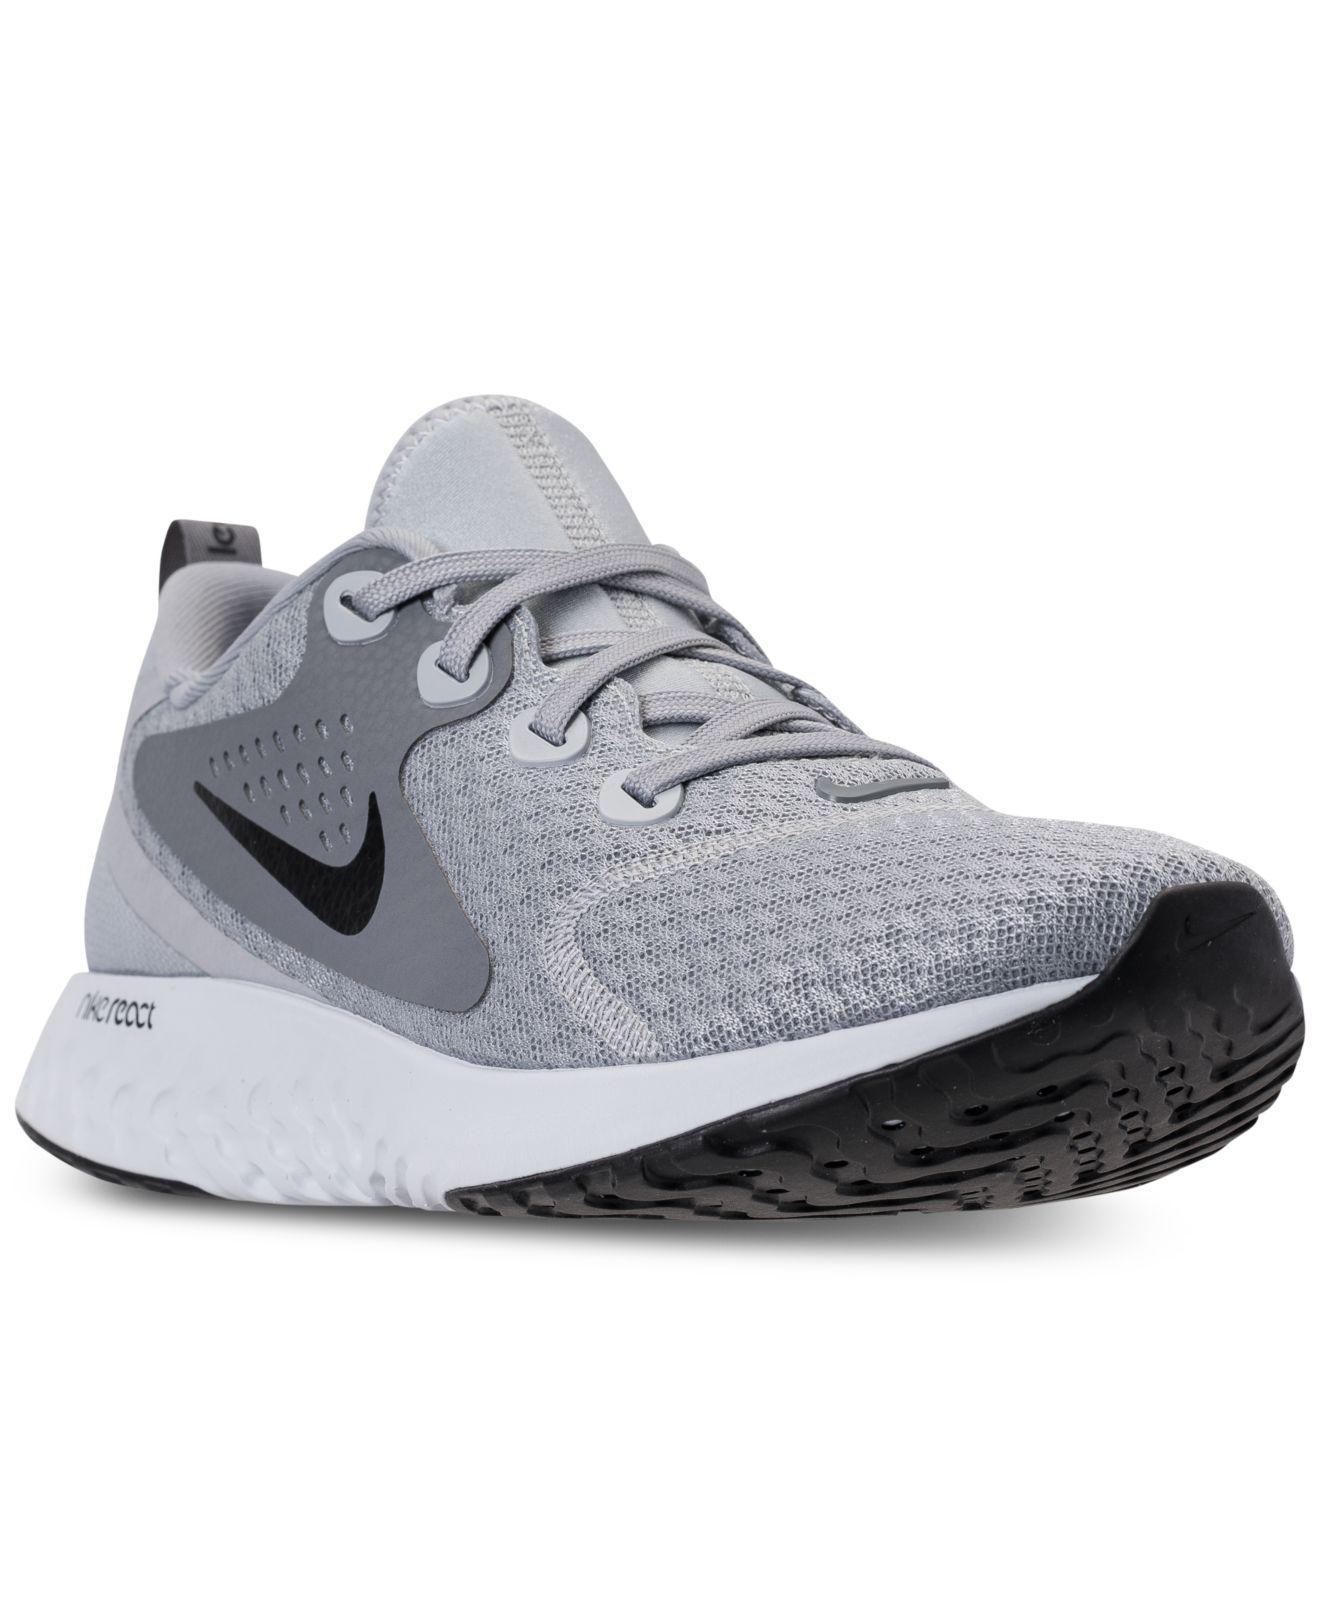 Nike Men's Legend React Running Sneakers from Finish Line 00WLy